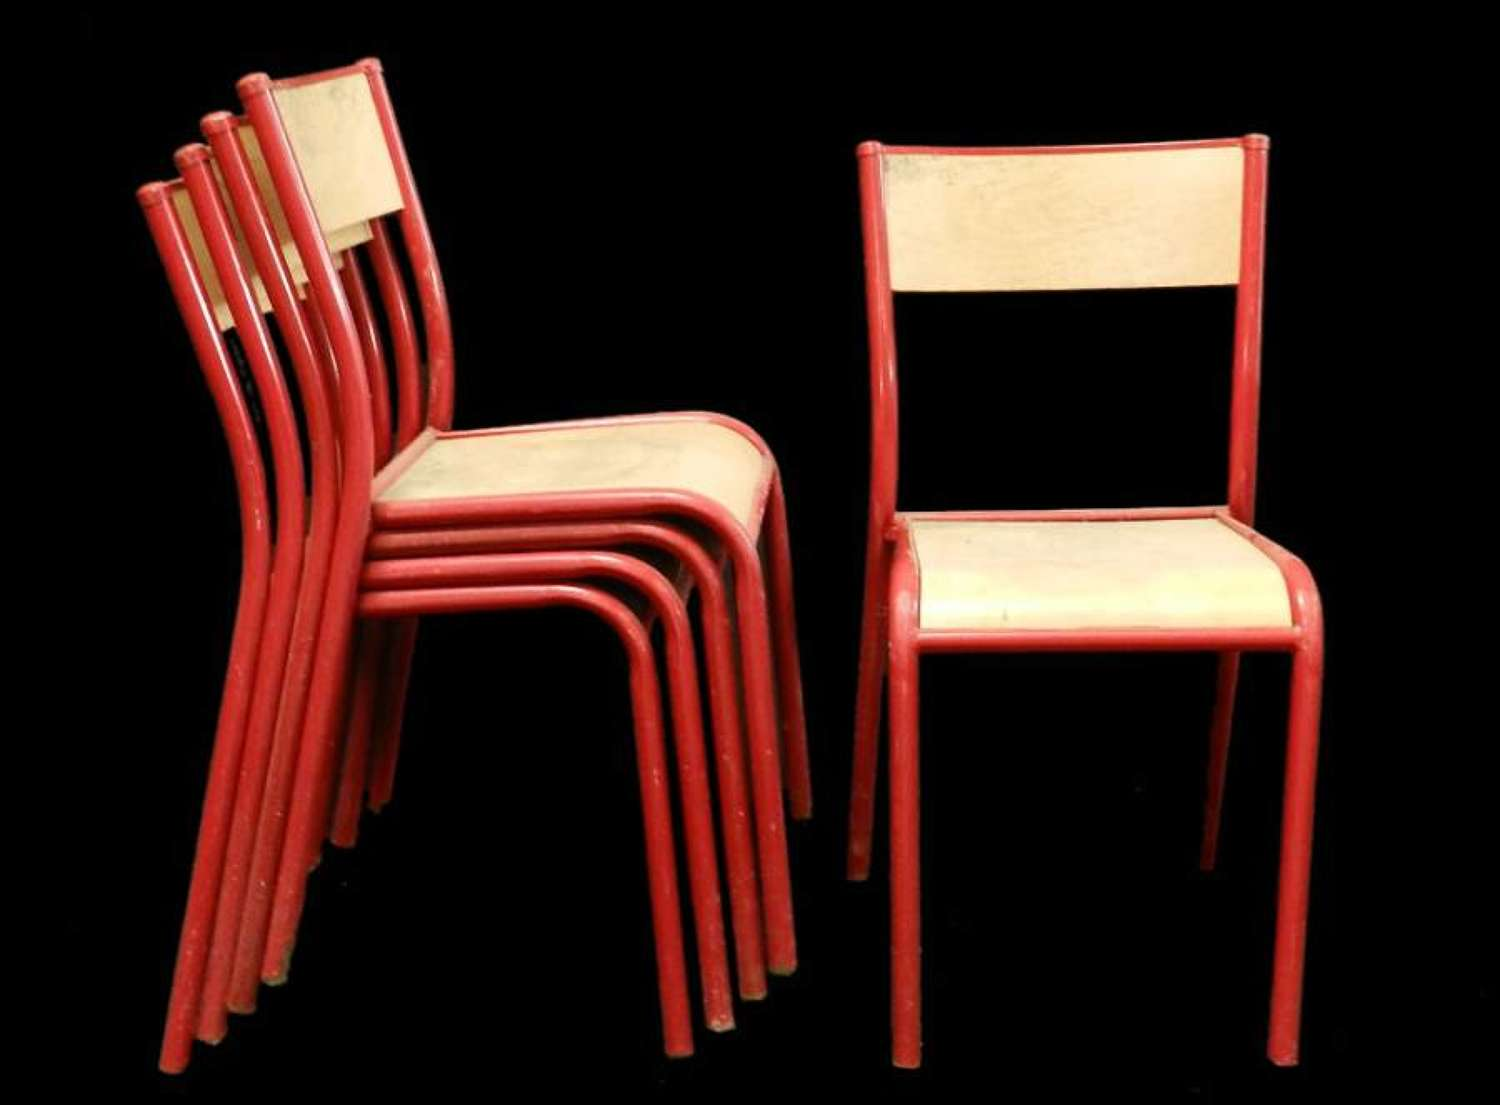 10 Red Stacking Chairs Mid Century (will sell as 6 & 4)